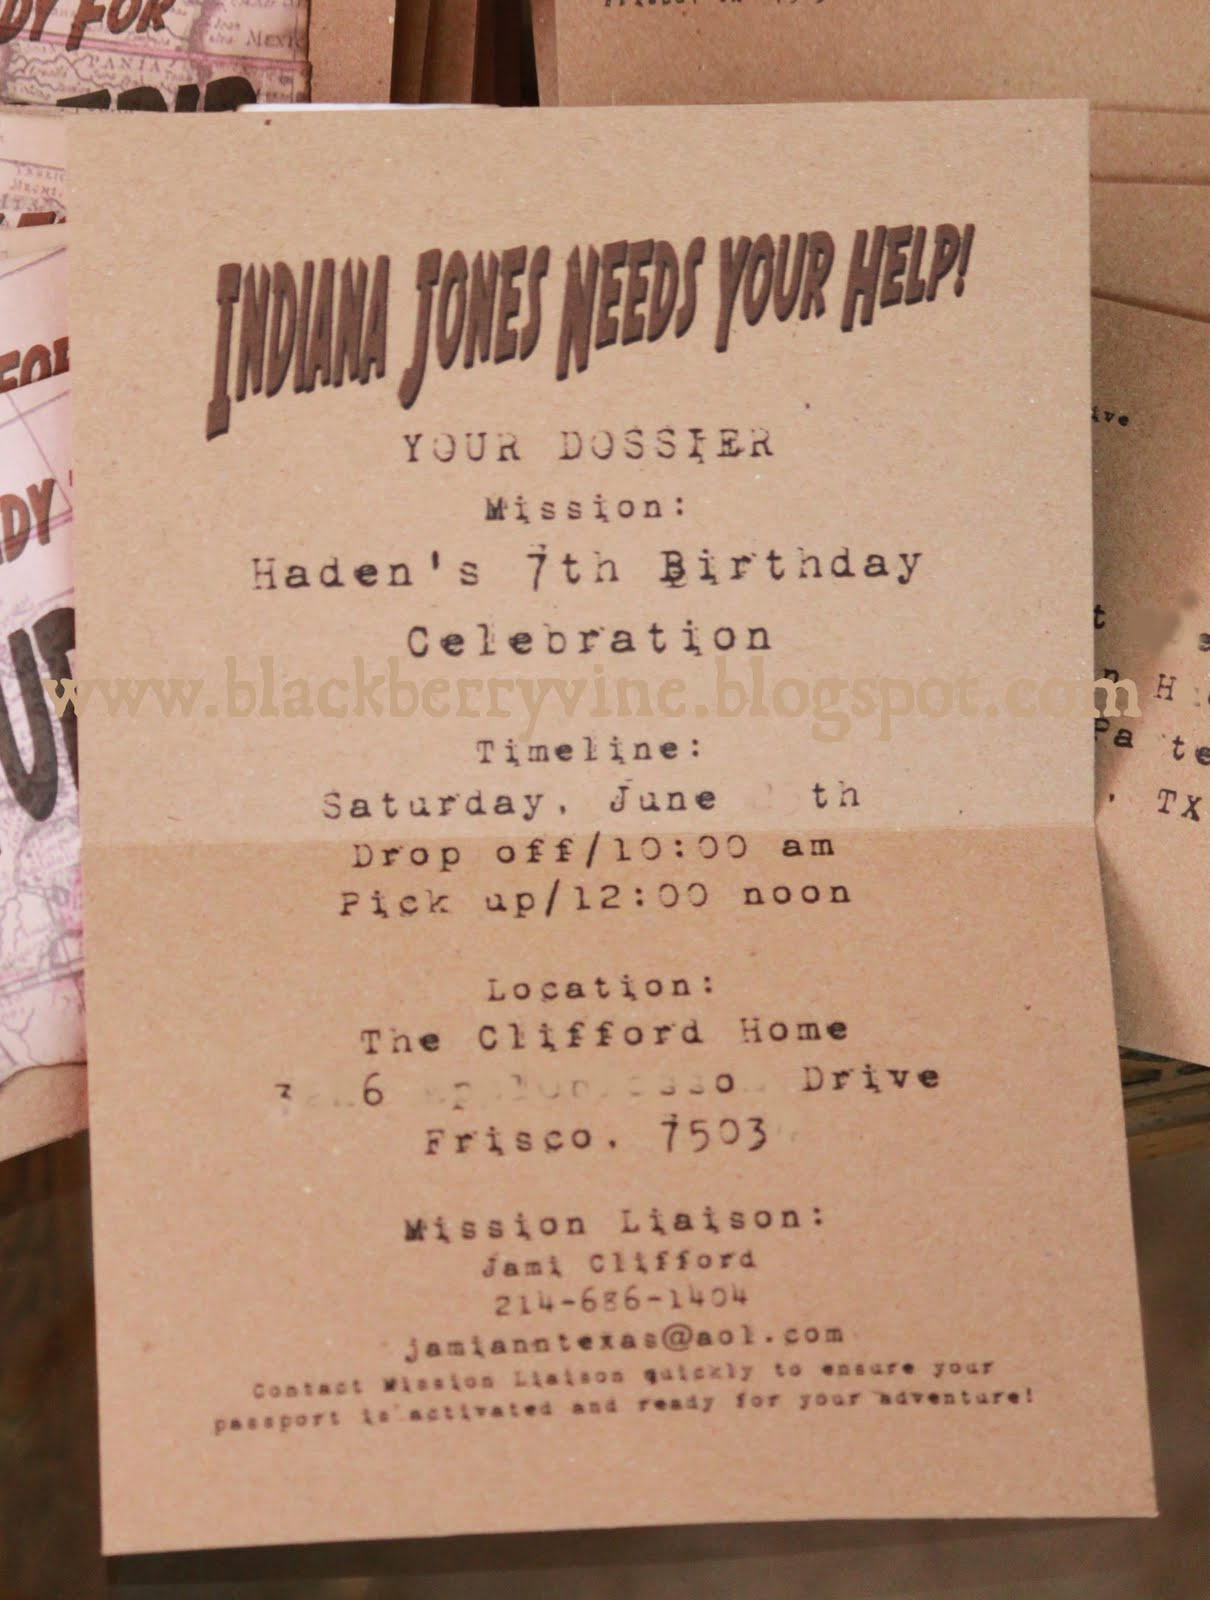 Are You Ready for Adventure Indiana Jones Party Invitations – Indiana Jones Party Invitations